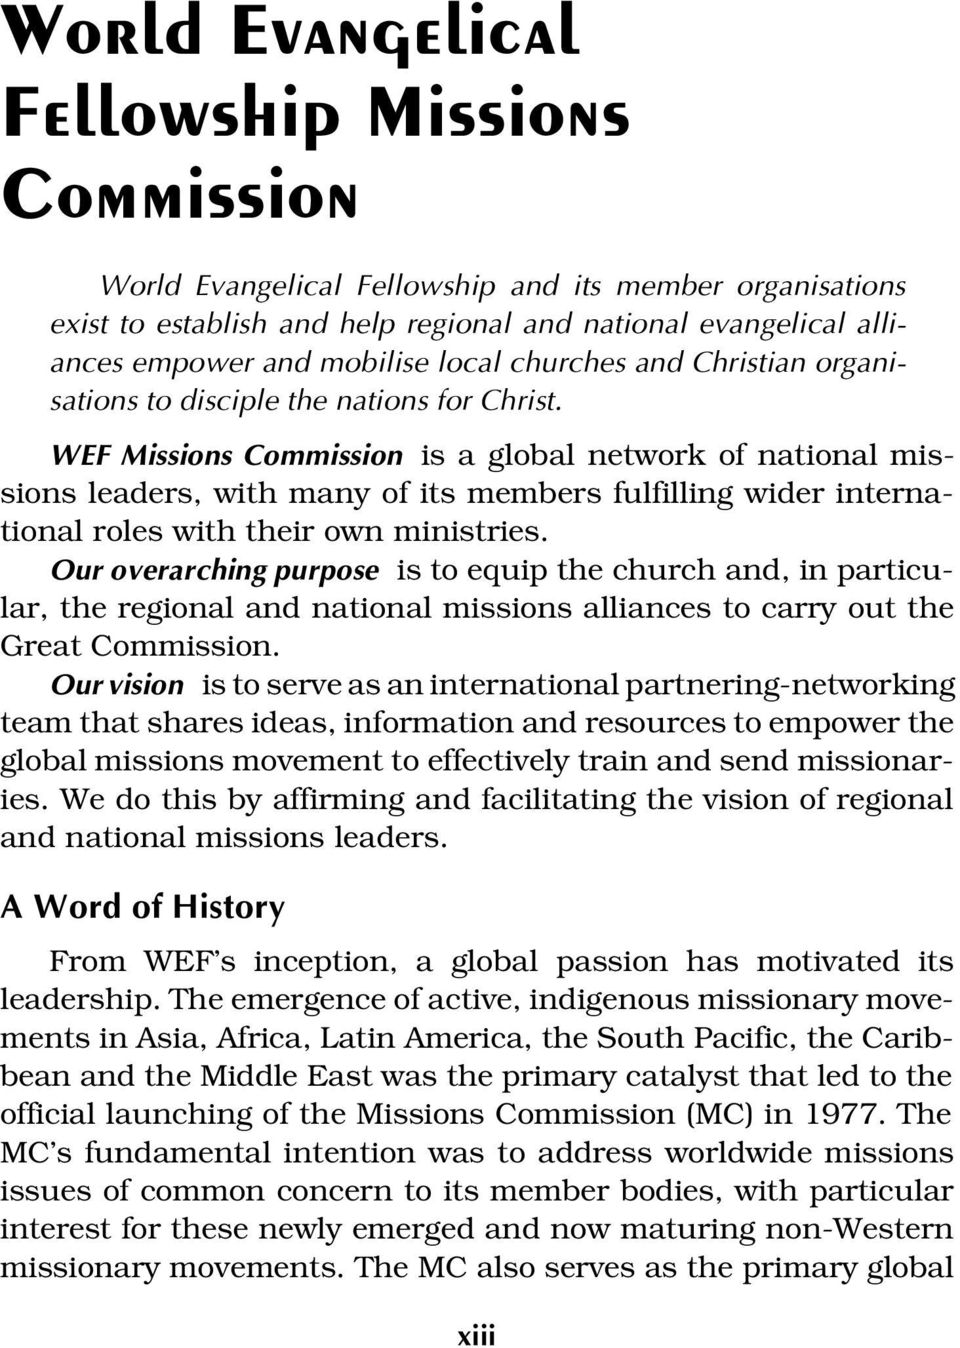 WEF Missions Commission is a global network of national missions leaders, with many of its members fulfilling wider international roles with their own ministries.